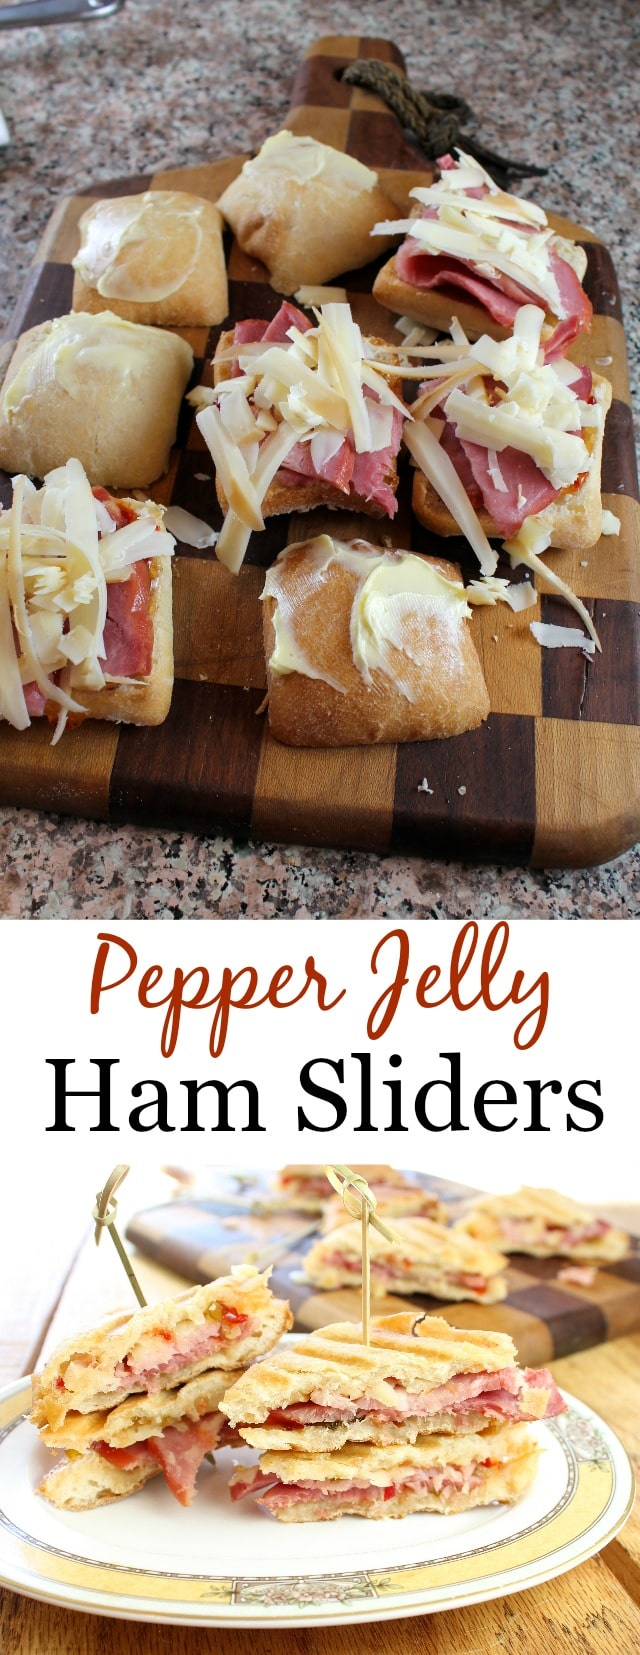 Pepper Jelly Ham Sliders get the recipe at missinthekitchen.com